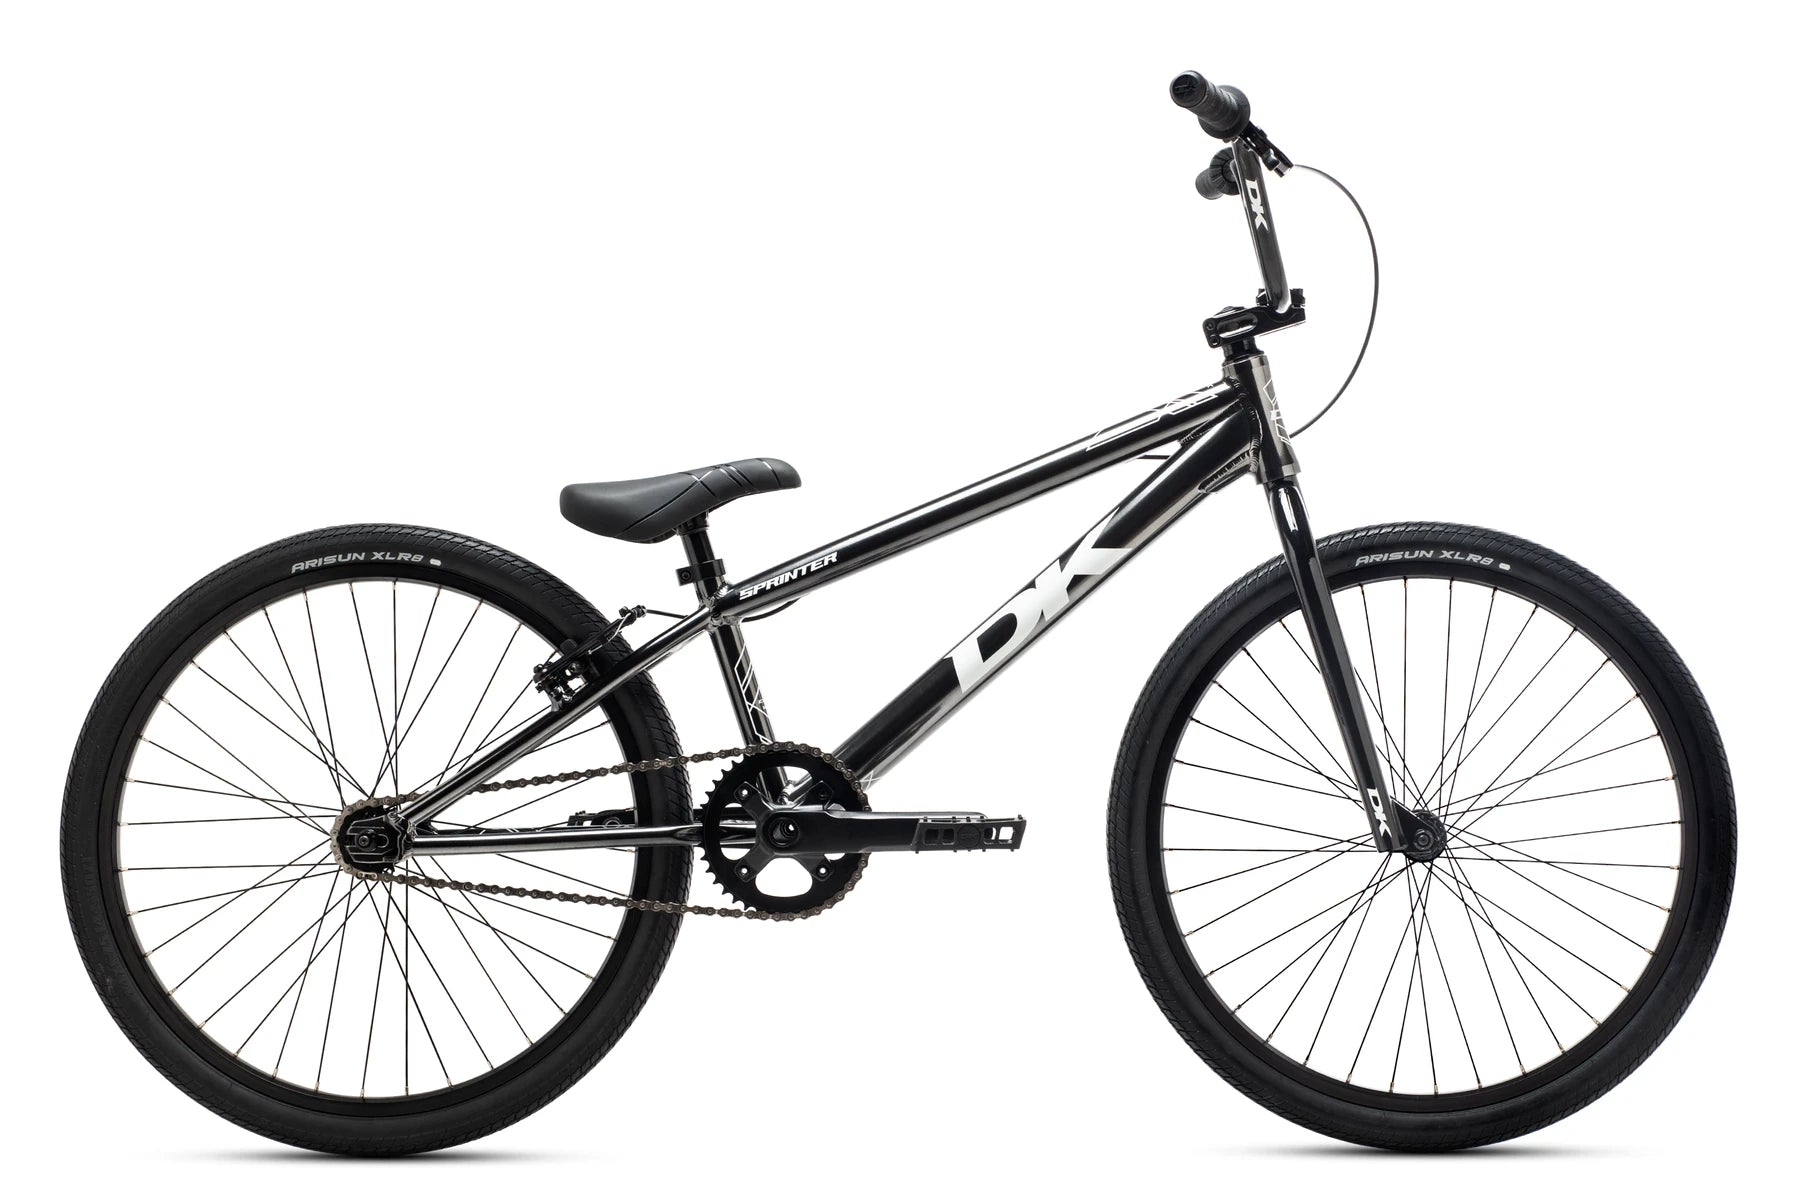 "2021 DK Sprinter Cruiser 24"" Complete BMX Race Bike - 21.75""TT - Smoke Gray"